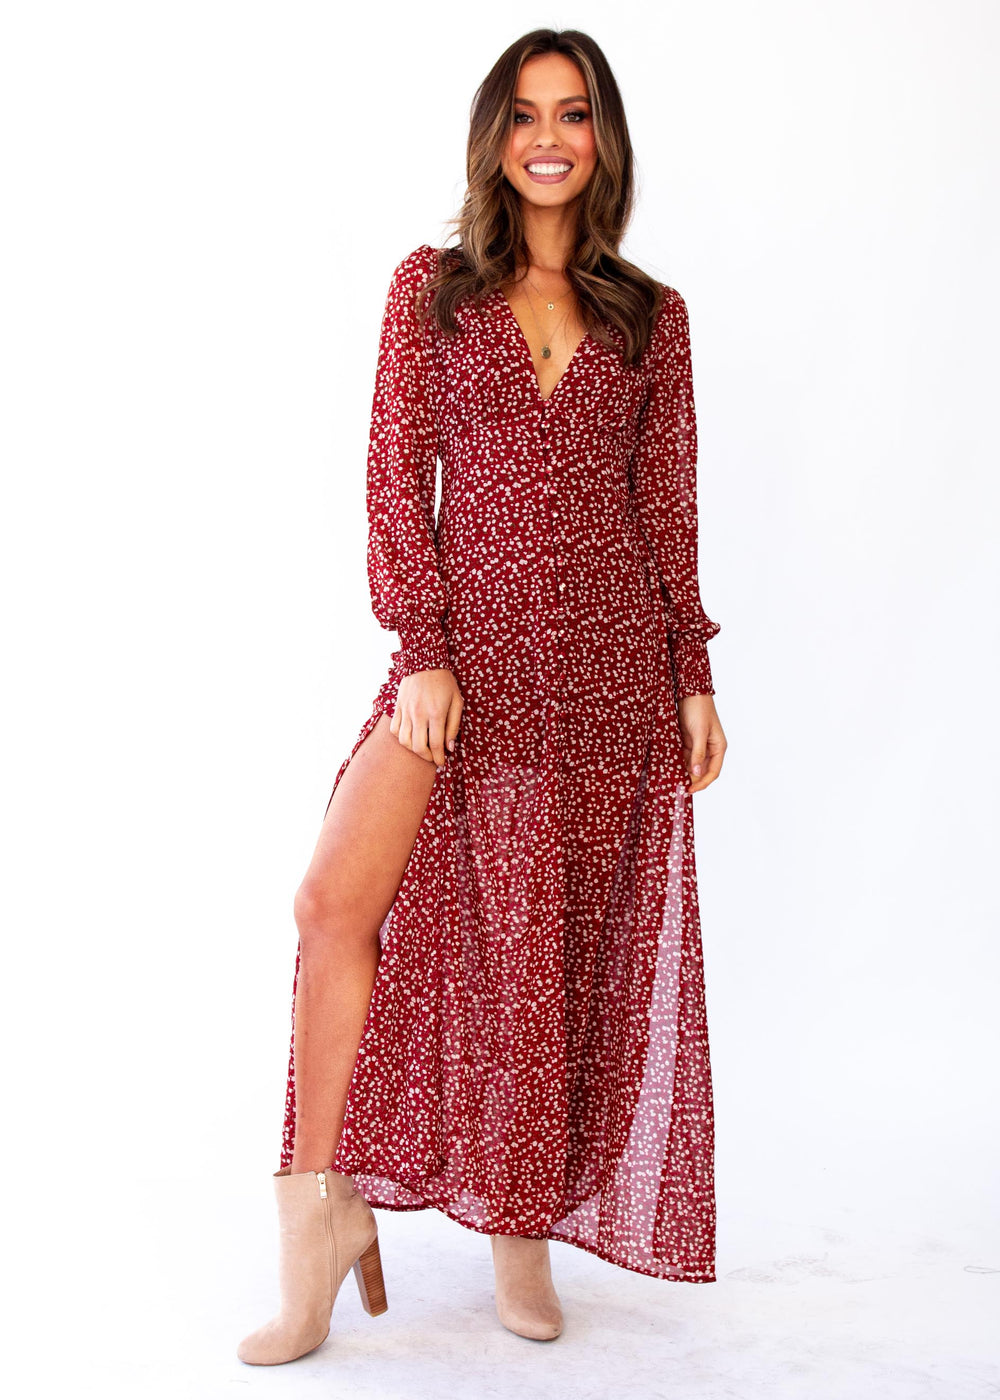 Women's Ceres Maxi Dress w/ Slip - Red Floral